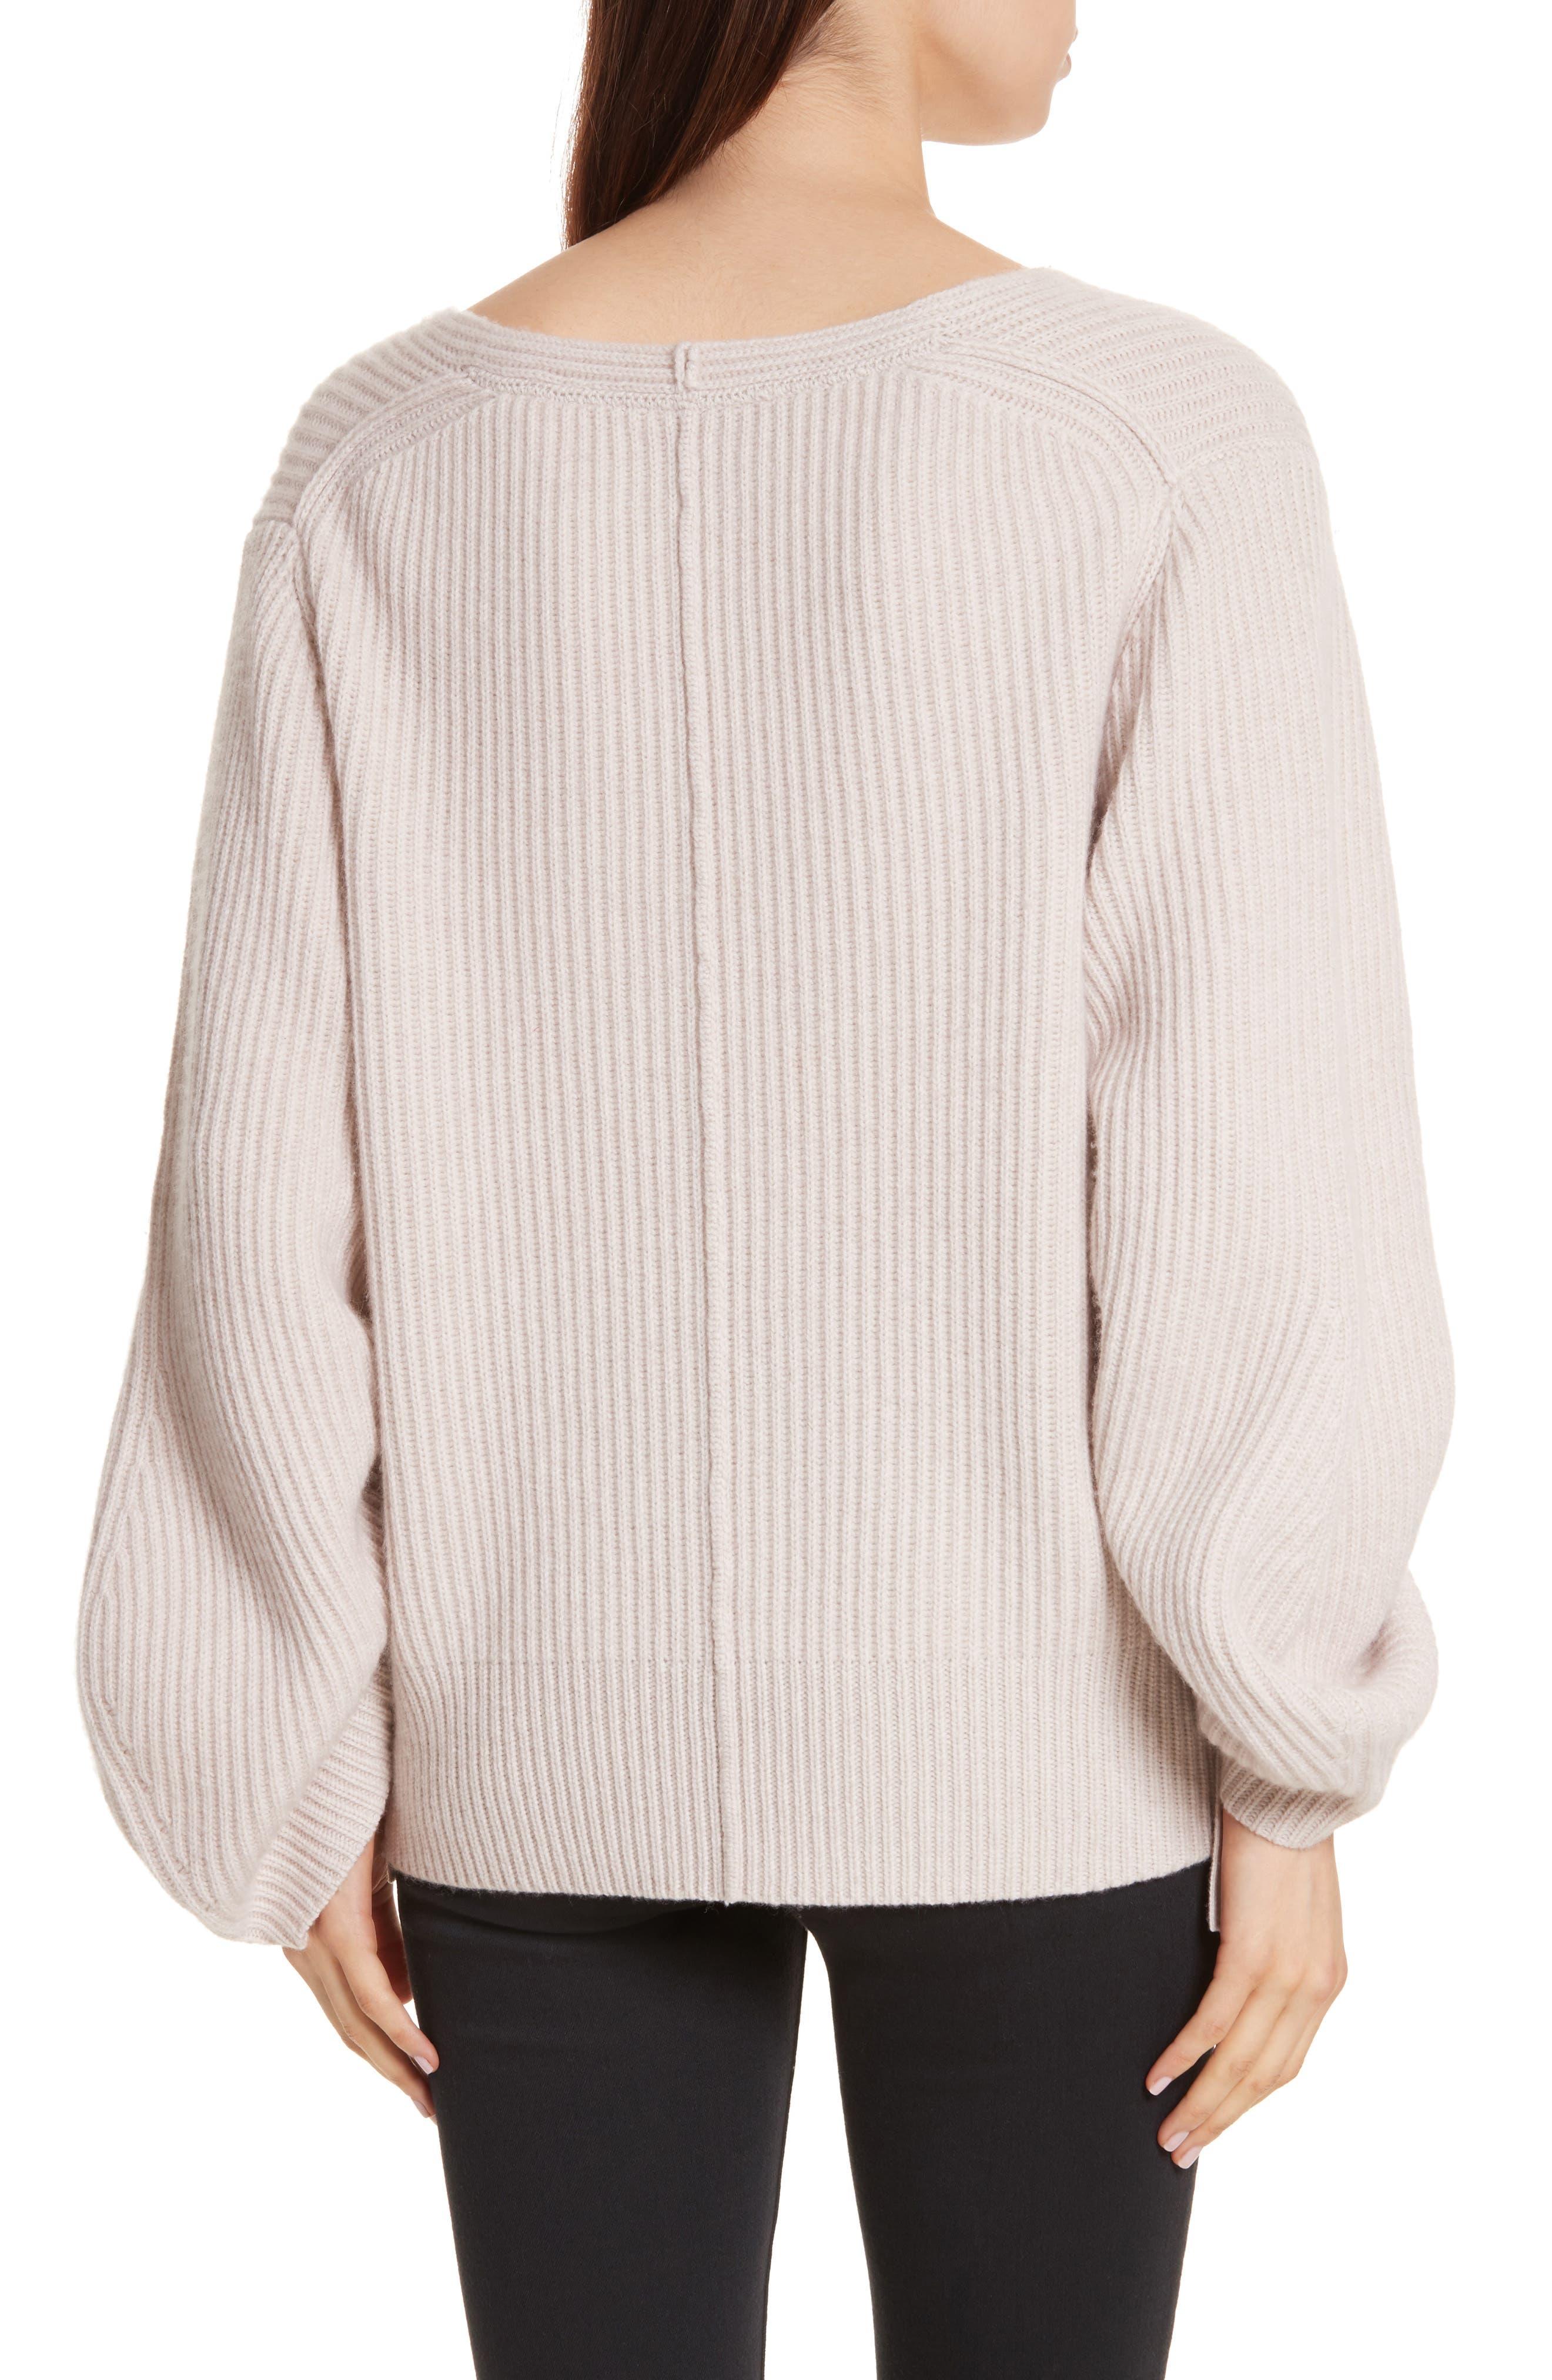 Anneka Wool & Cashmere Puff Sleeve Sweater,                             Alternate thumbnail 2, color,                             270